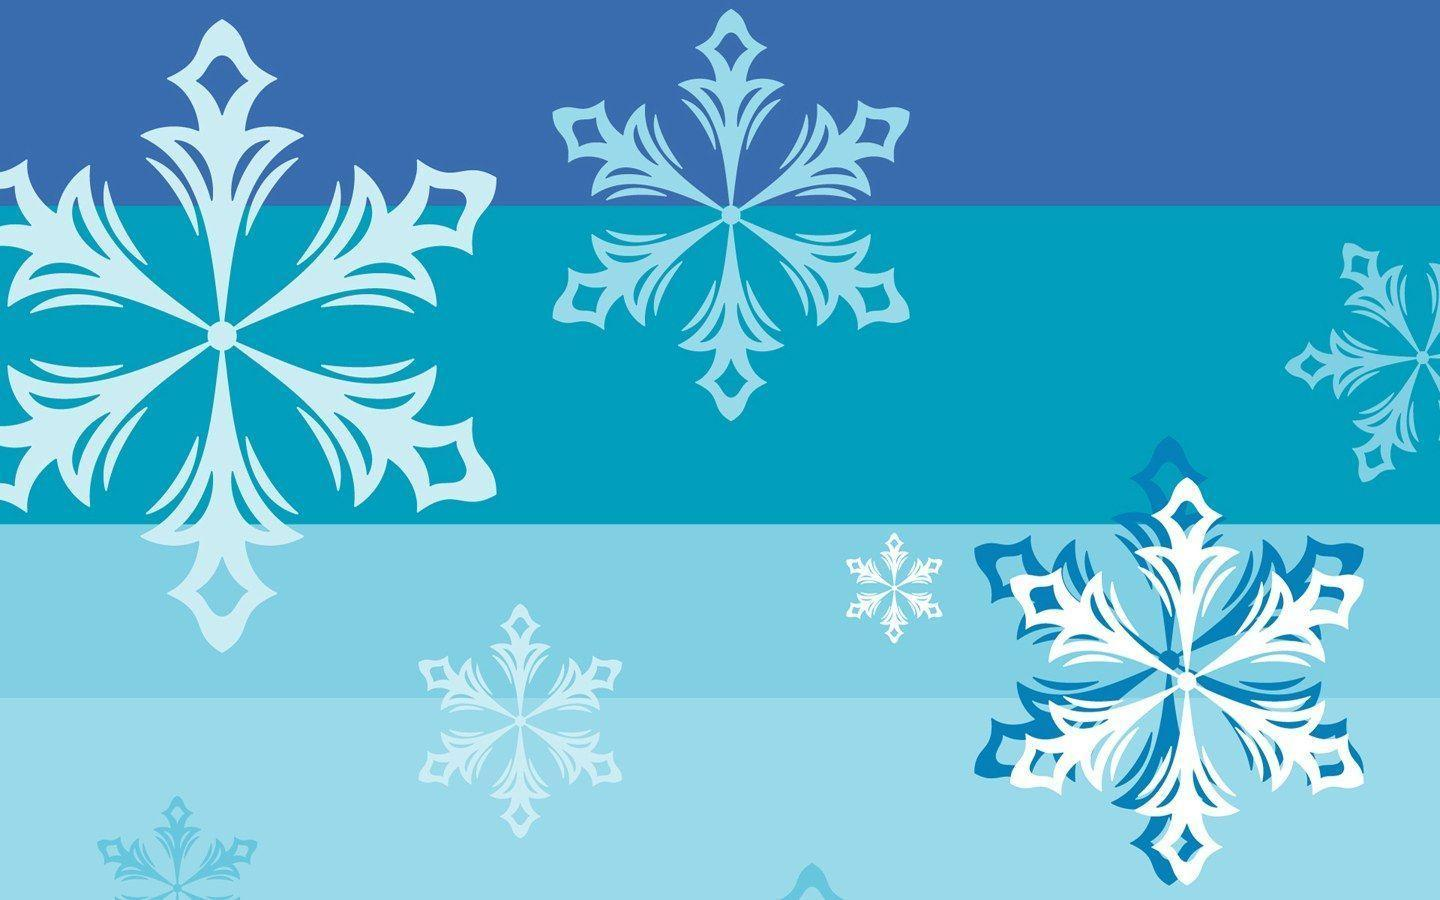 real snowflakes background - photo #33